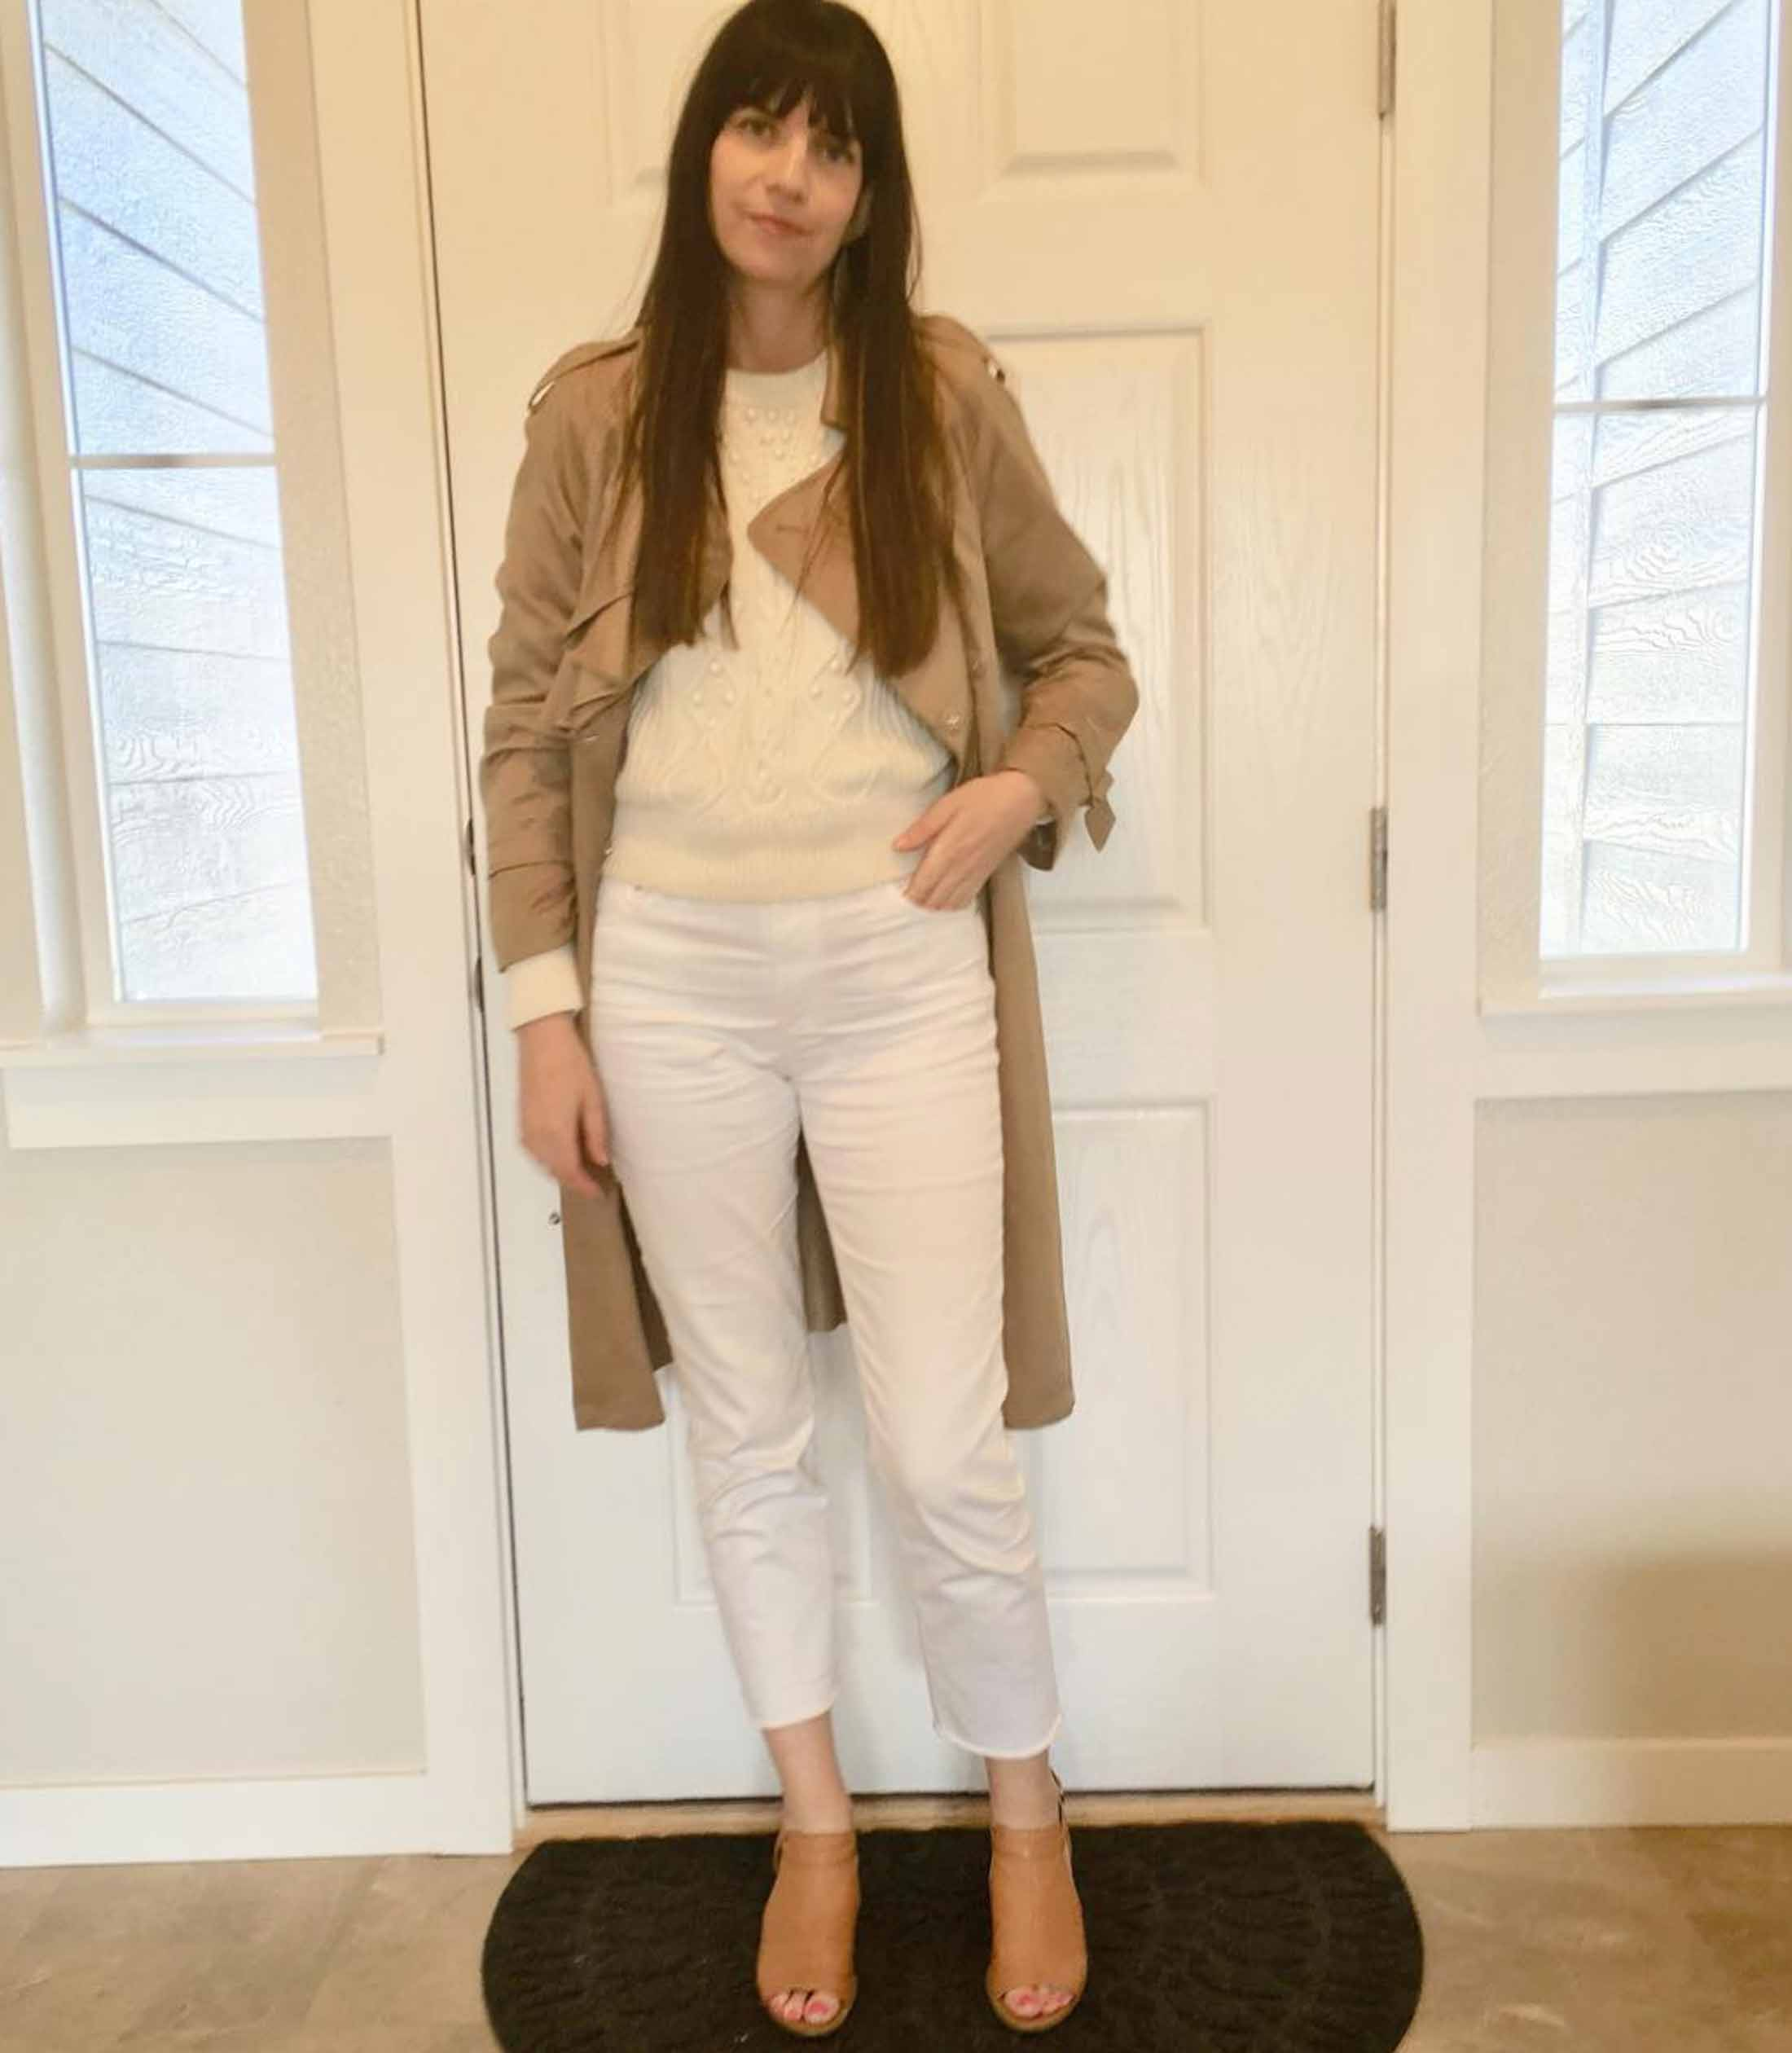 Camel, white, off-white, caramel, beige & brown....Spring head-to-toe neutrals, we're lookin' at you! It's Week 2 of the #TMEStyleChallenge!